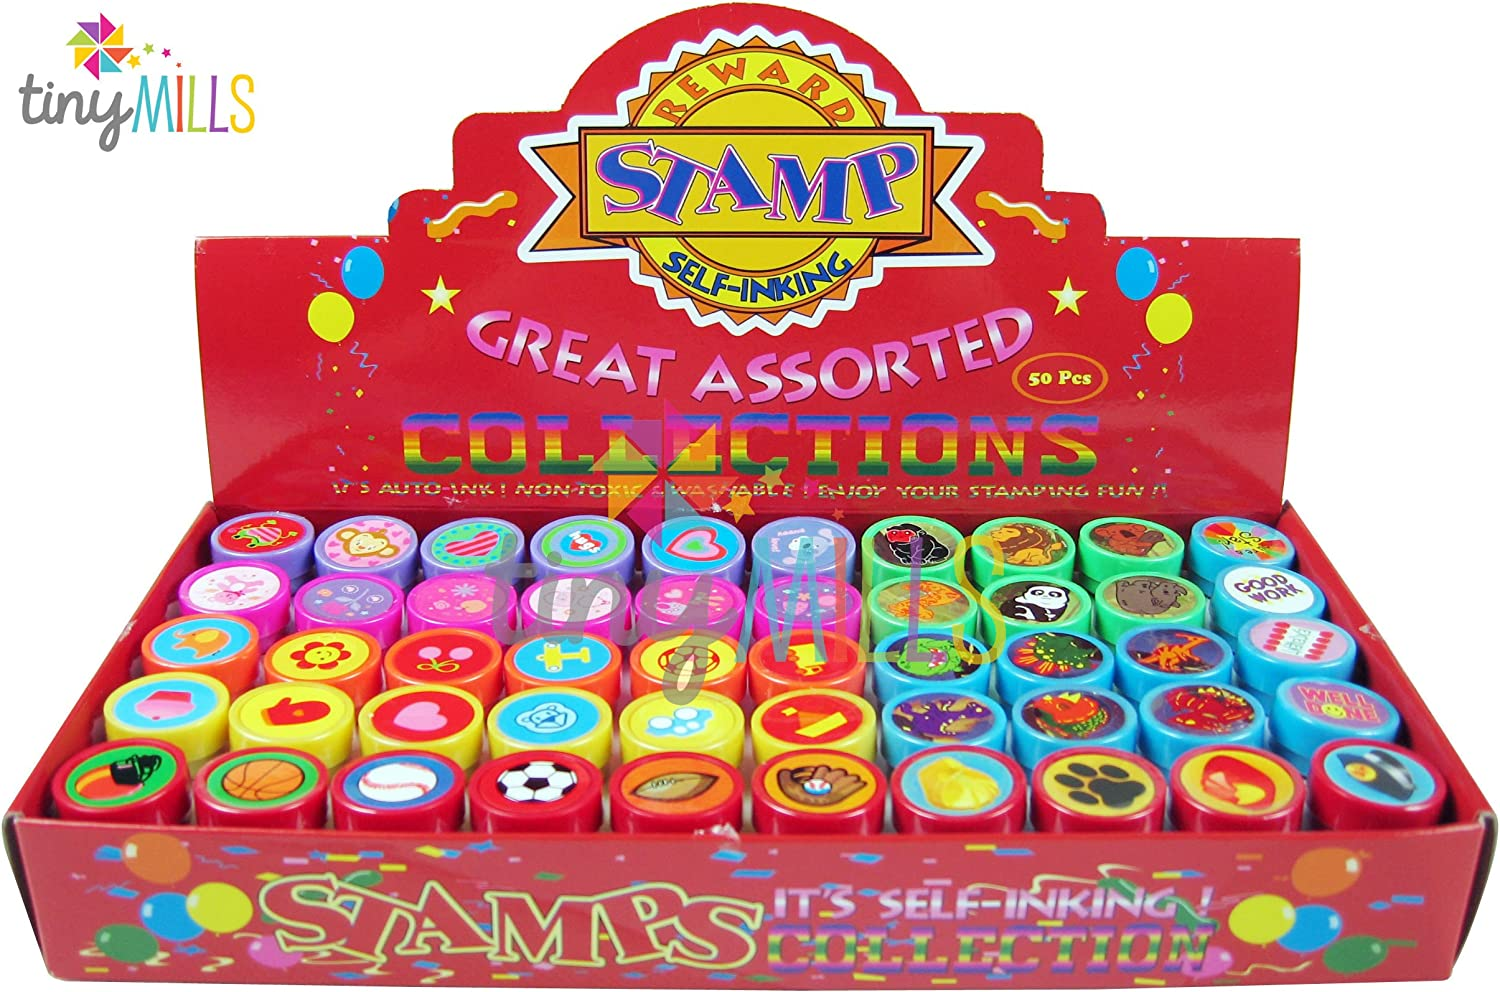 B01F7WOS26 Tiny Mills 50 Pcs Assorted Stampers for Kids - Birthday Party Favors 91xkInXLNTL